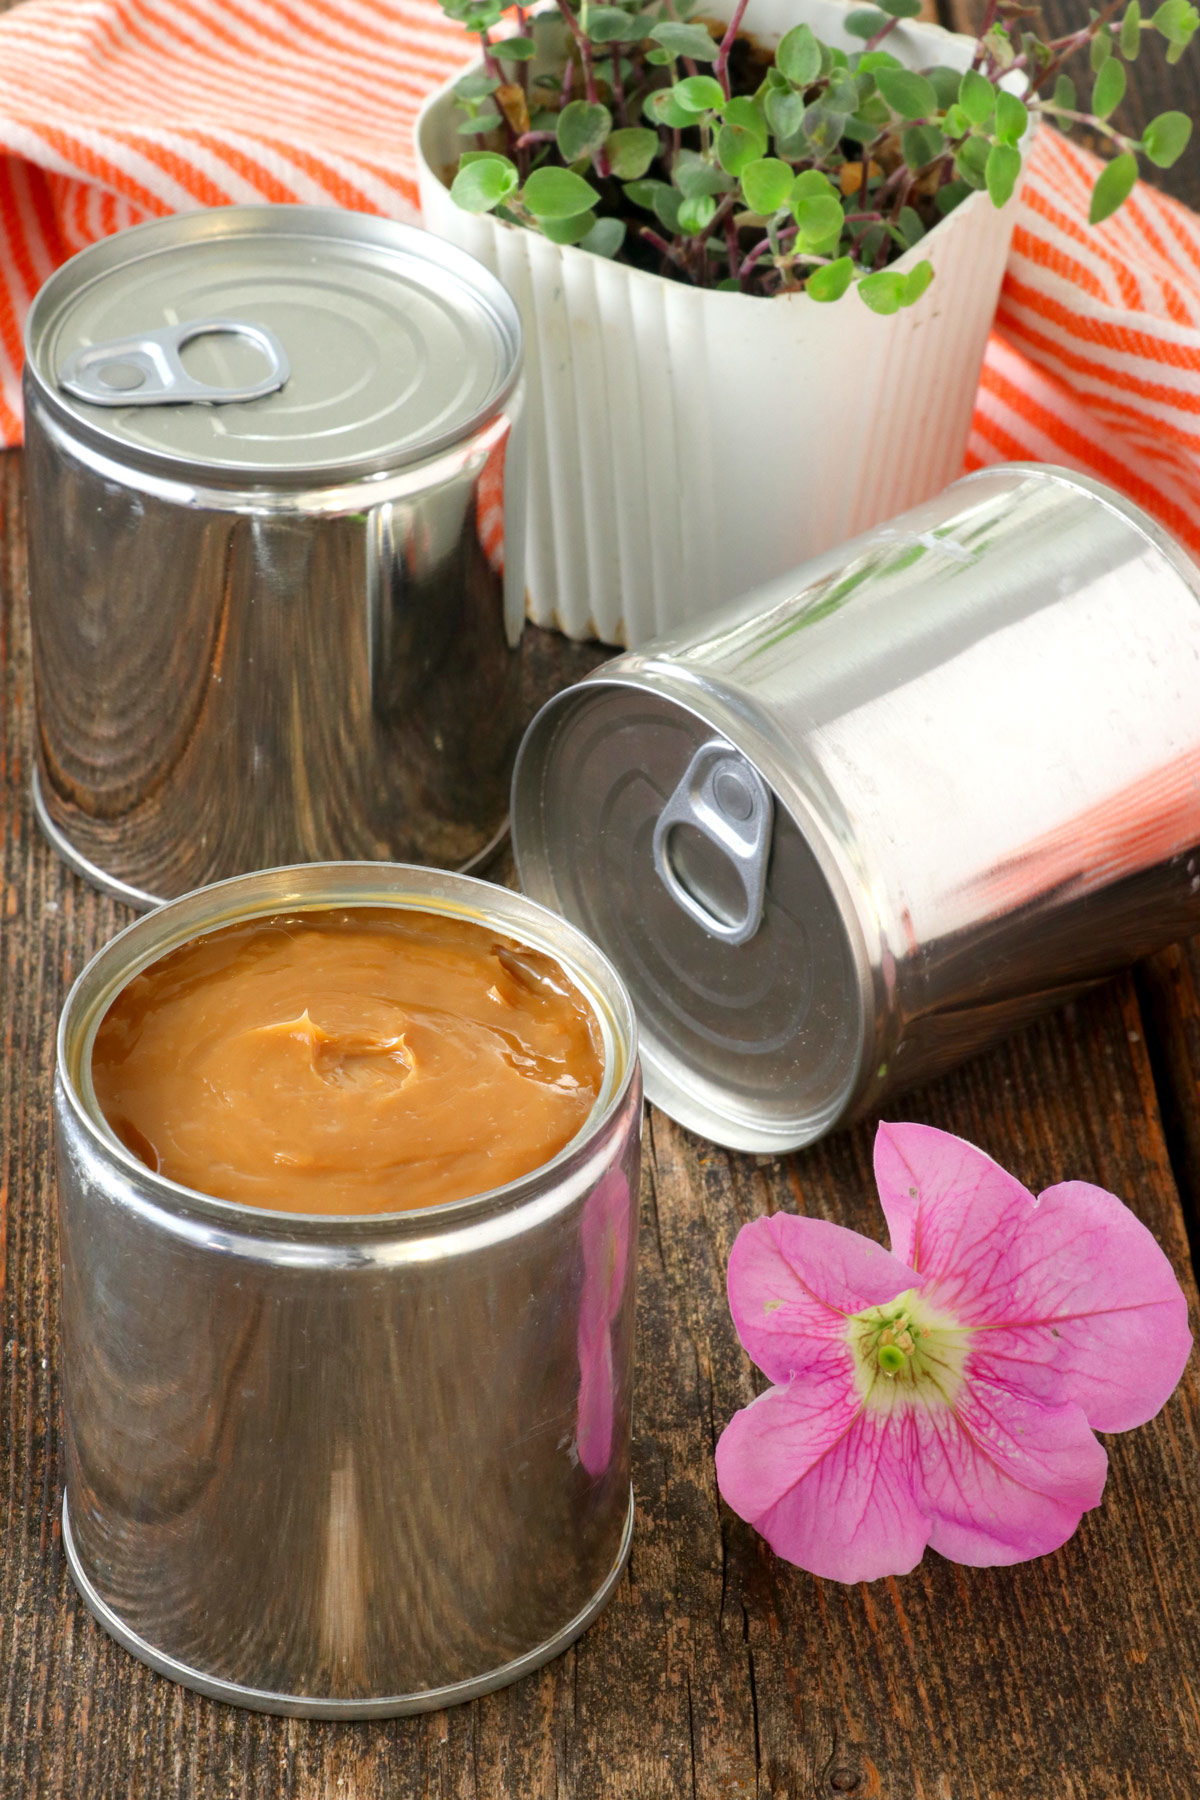 dulce de leche from canned condensed milk